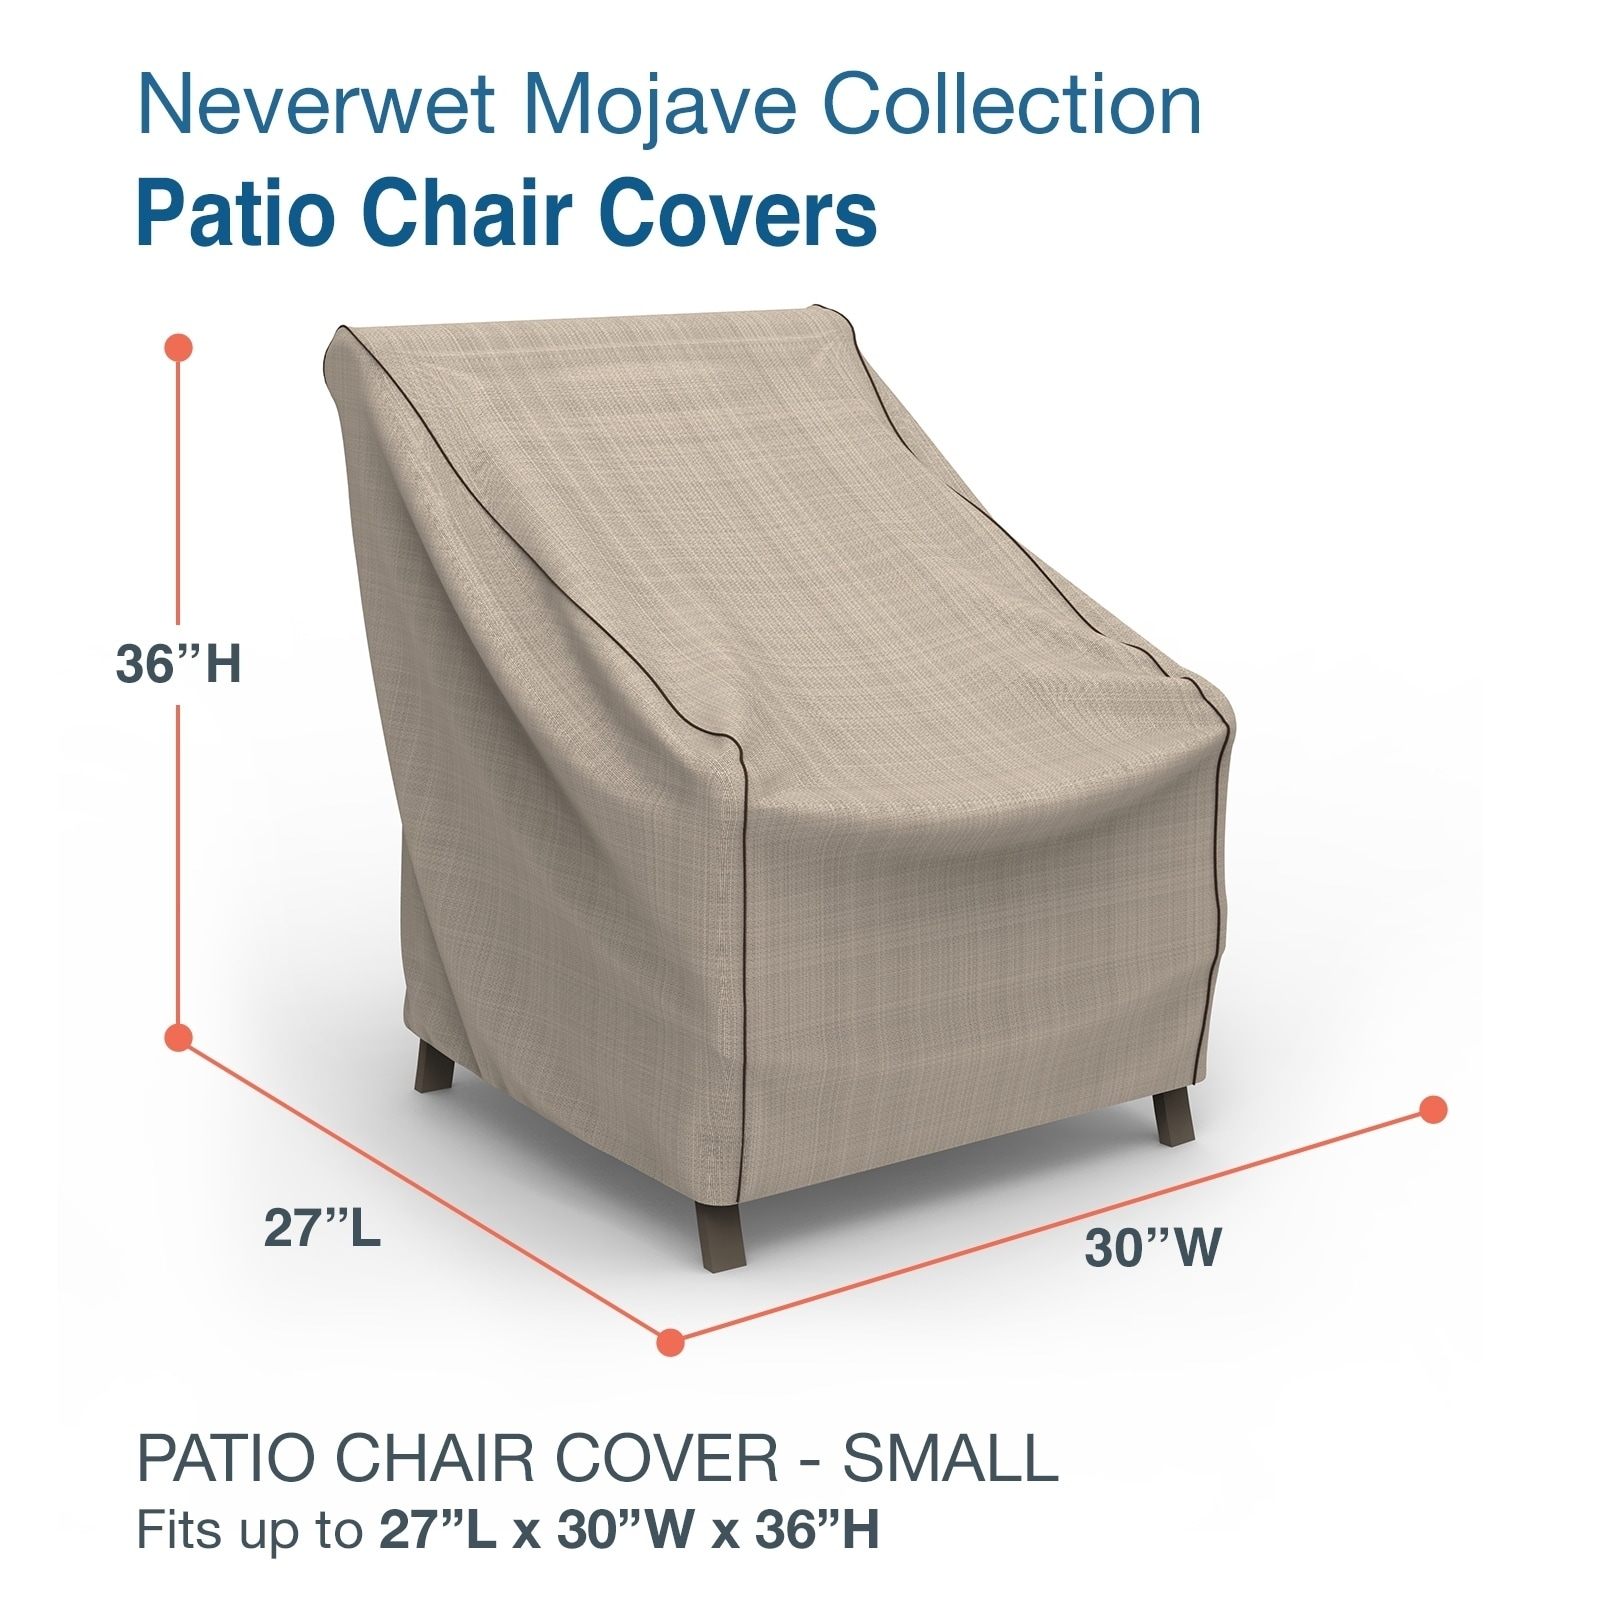 budge waterproof outdoor patio chair cover neverwet mojave black ivory multiple sizes